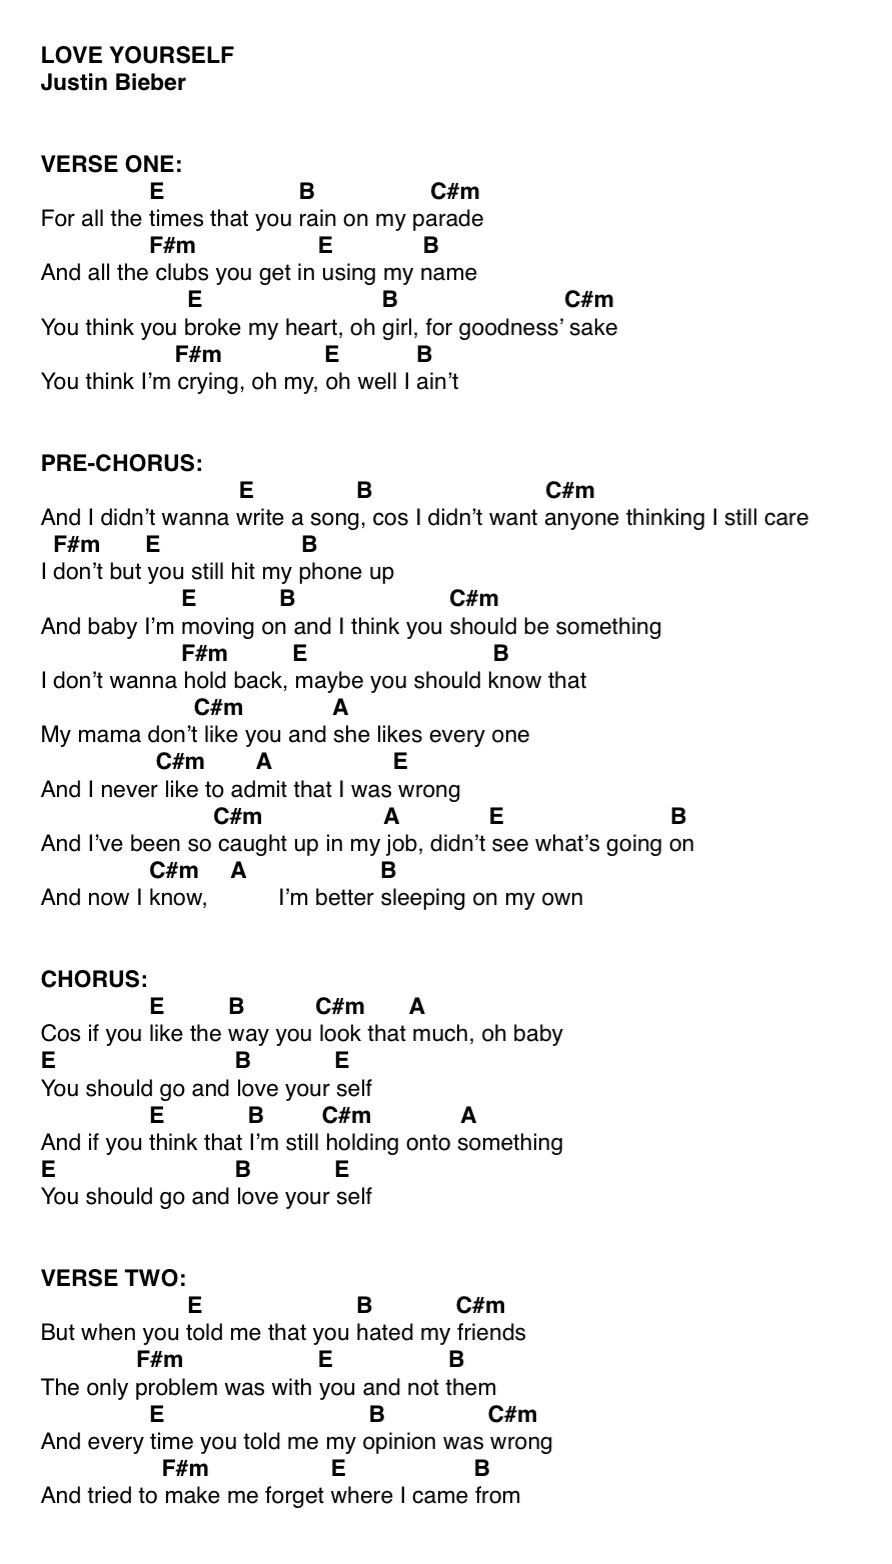 Love Yourself Ukulele Chords : yourself, ukulele, chords, Yourself, Ukulele, Chords, Songs,, Guitar, Songs